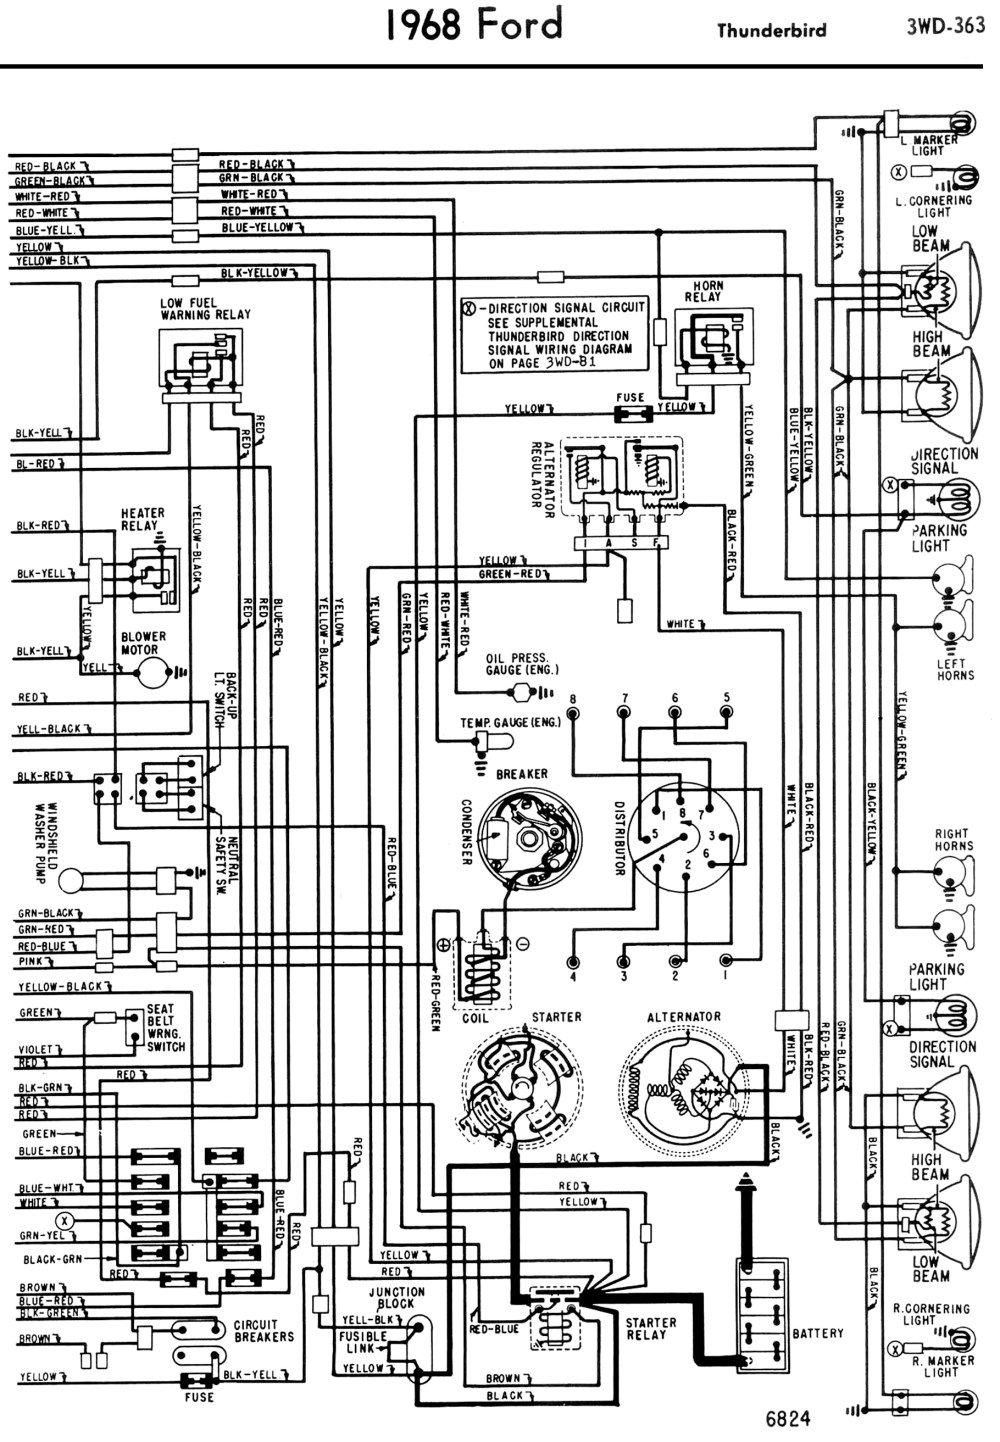 medium resolution of 95 ford thunderbird wiring diagram wiring diagram sort 95 ford thunderbird engine diagram